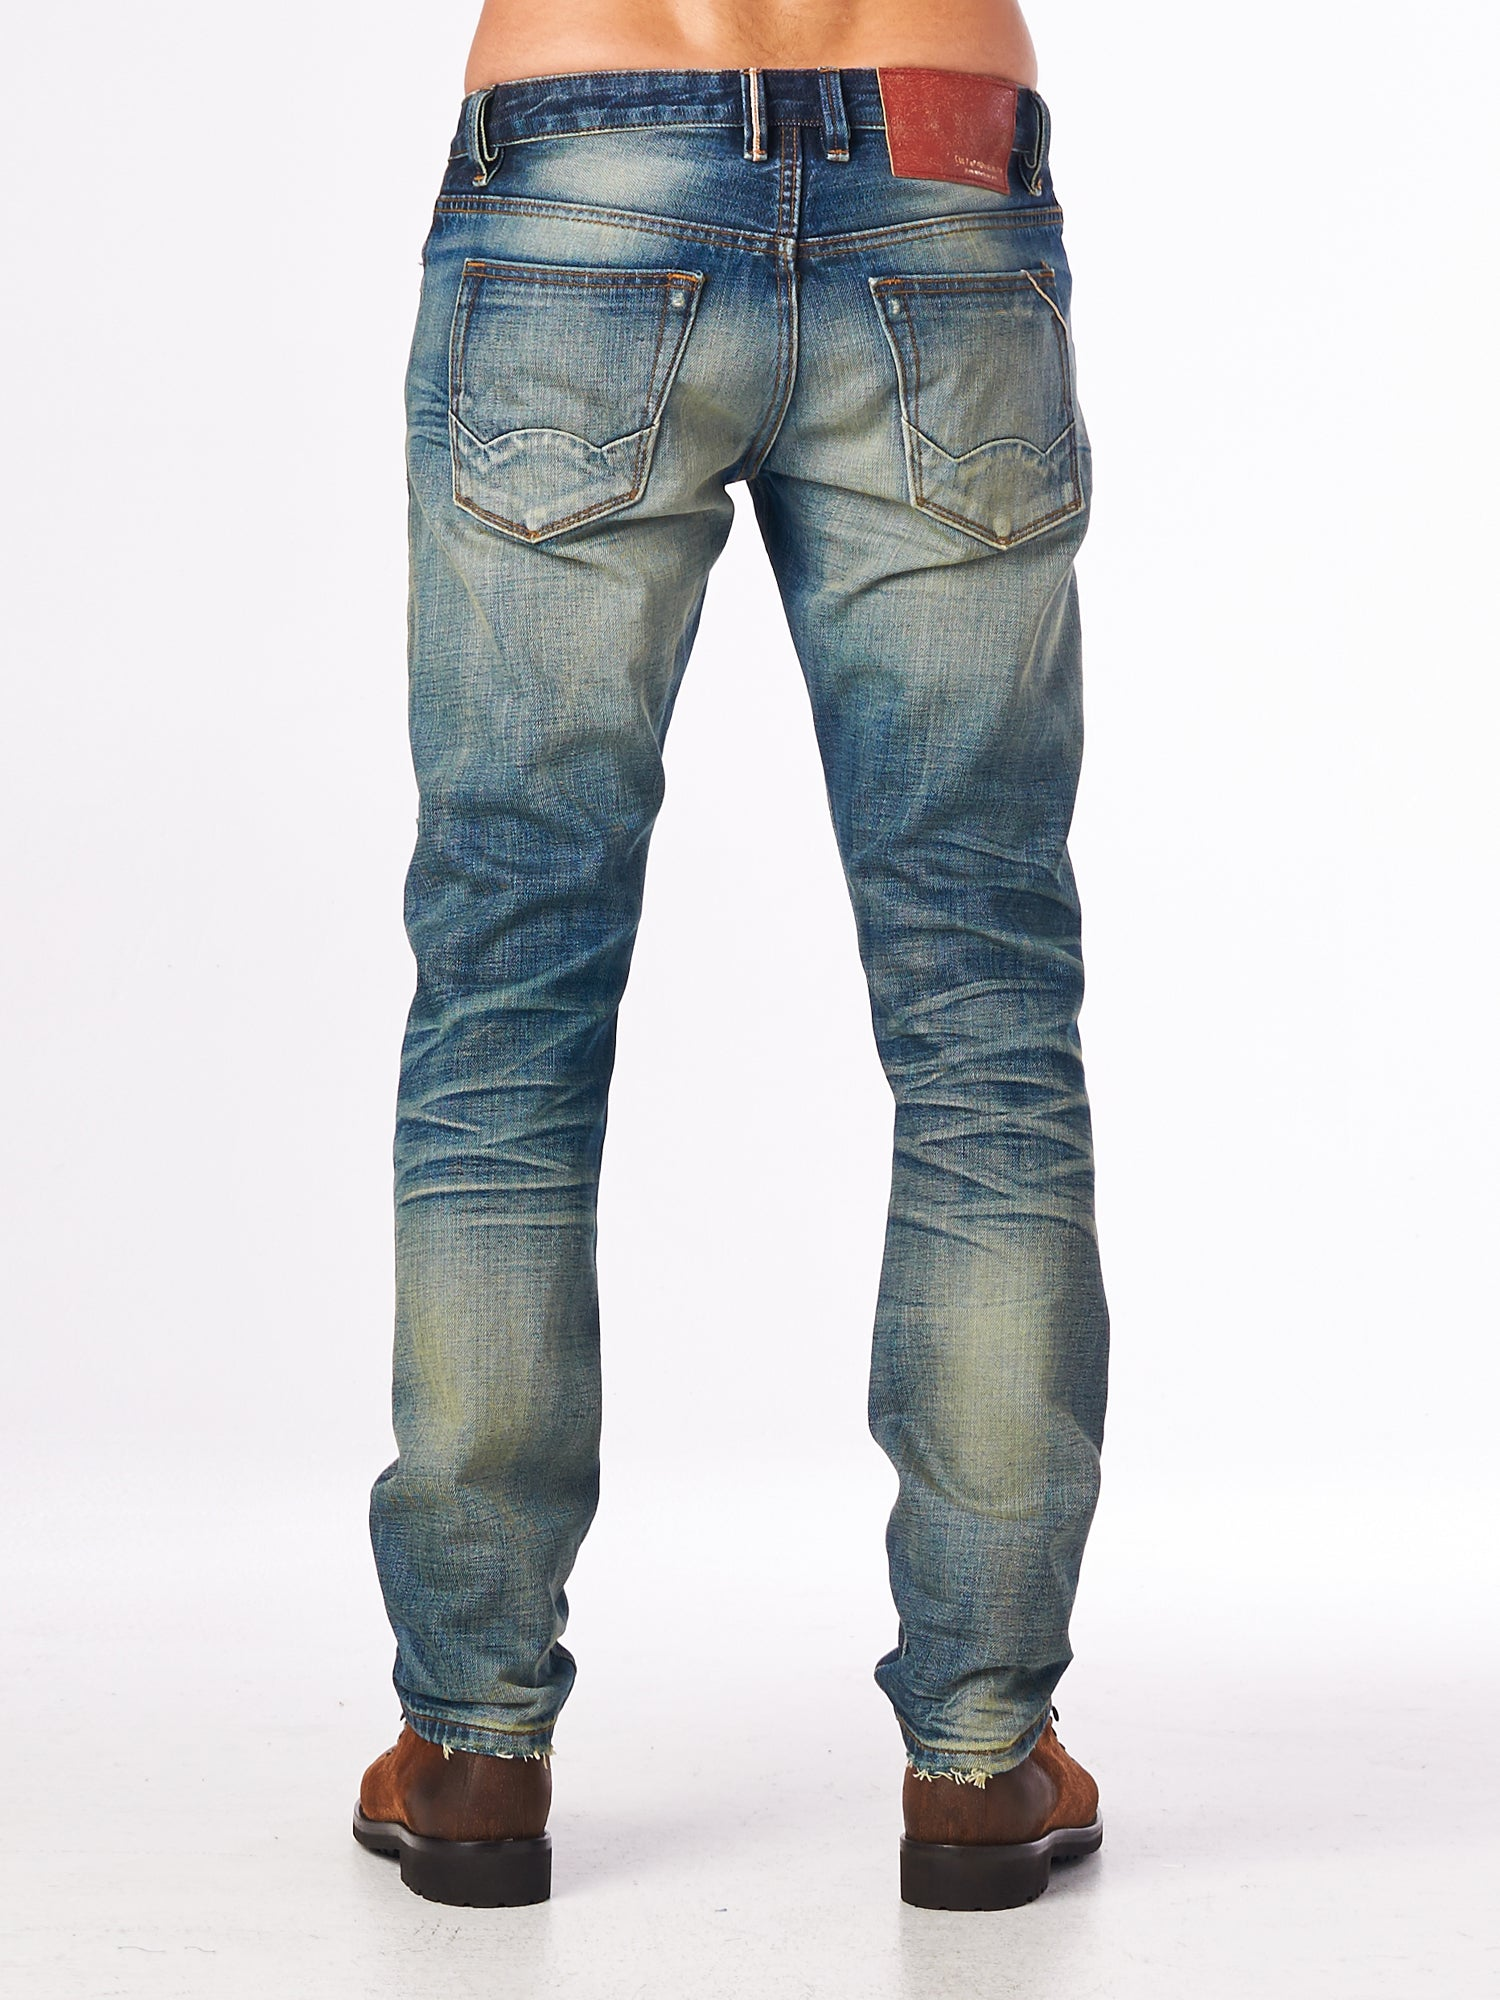 Cult of IndividualityMen's Rocker Slim Denim Jeans in Mccoy